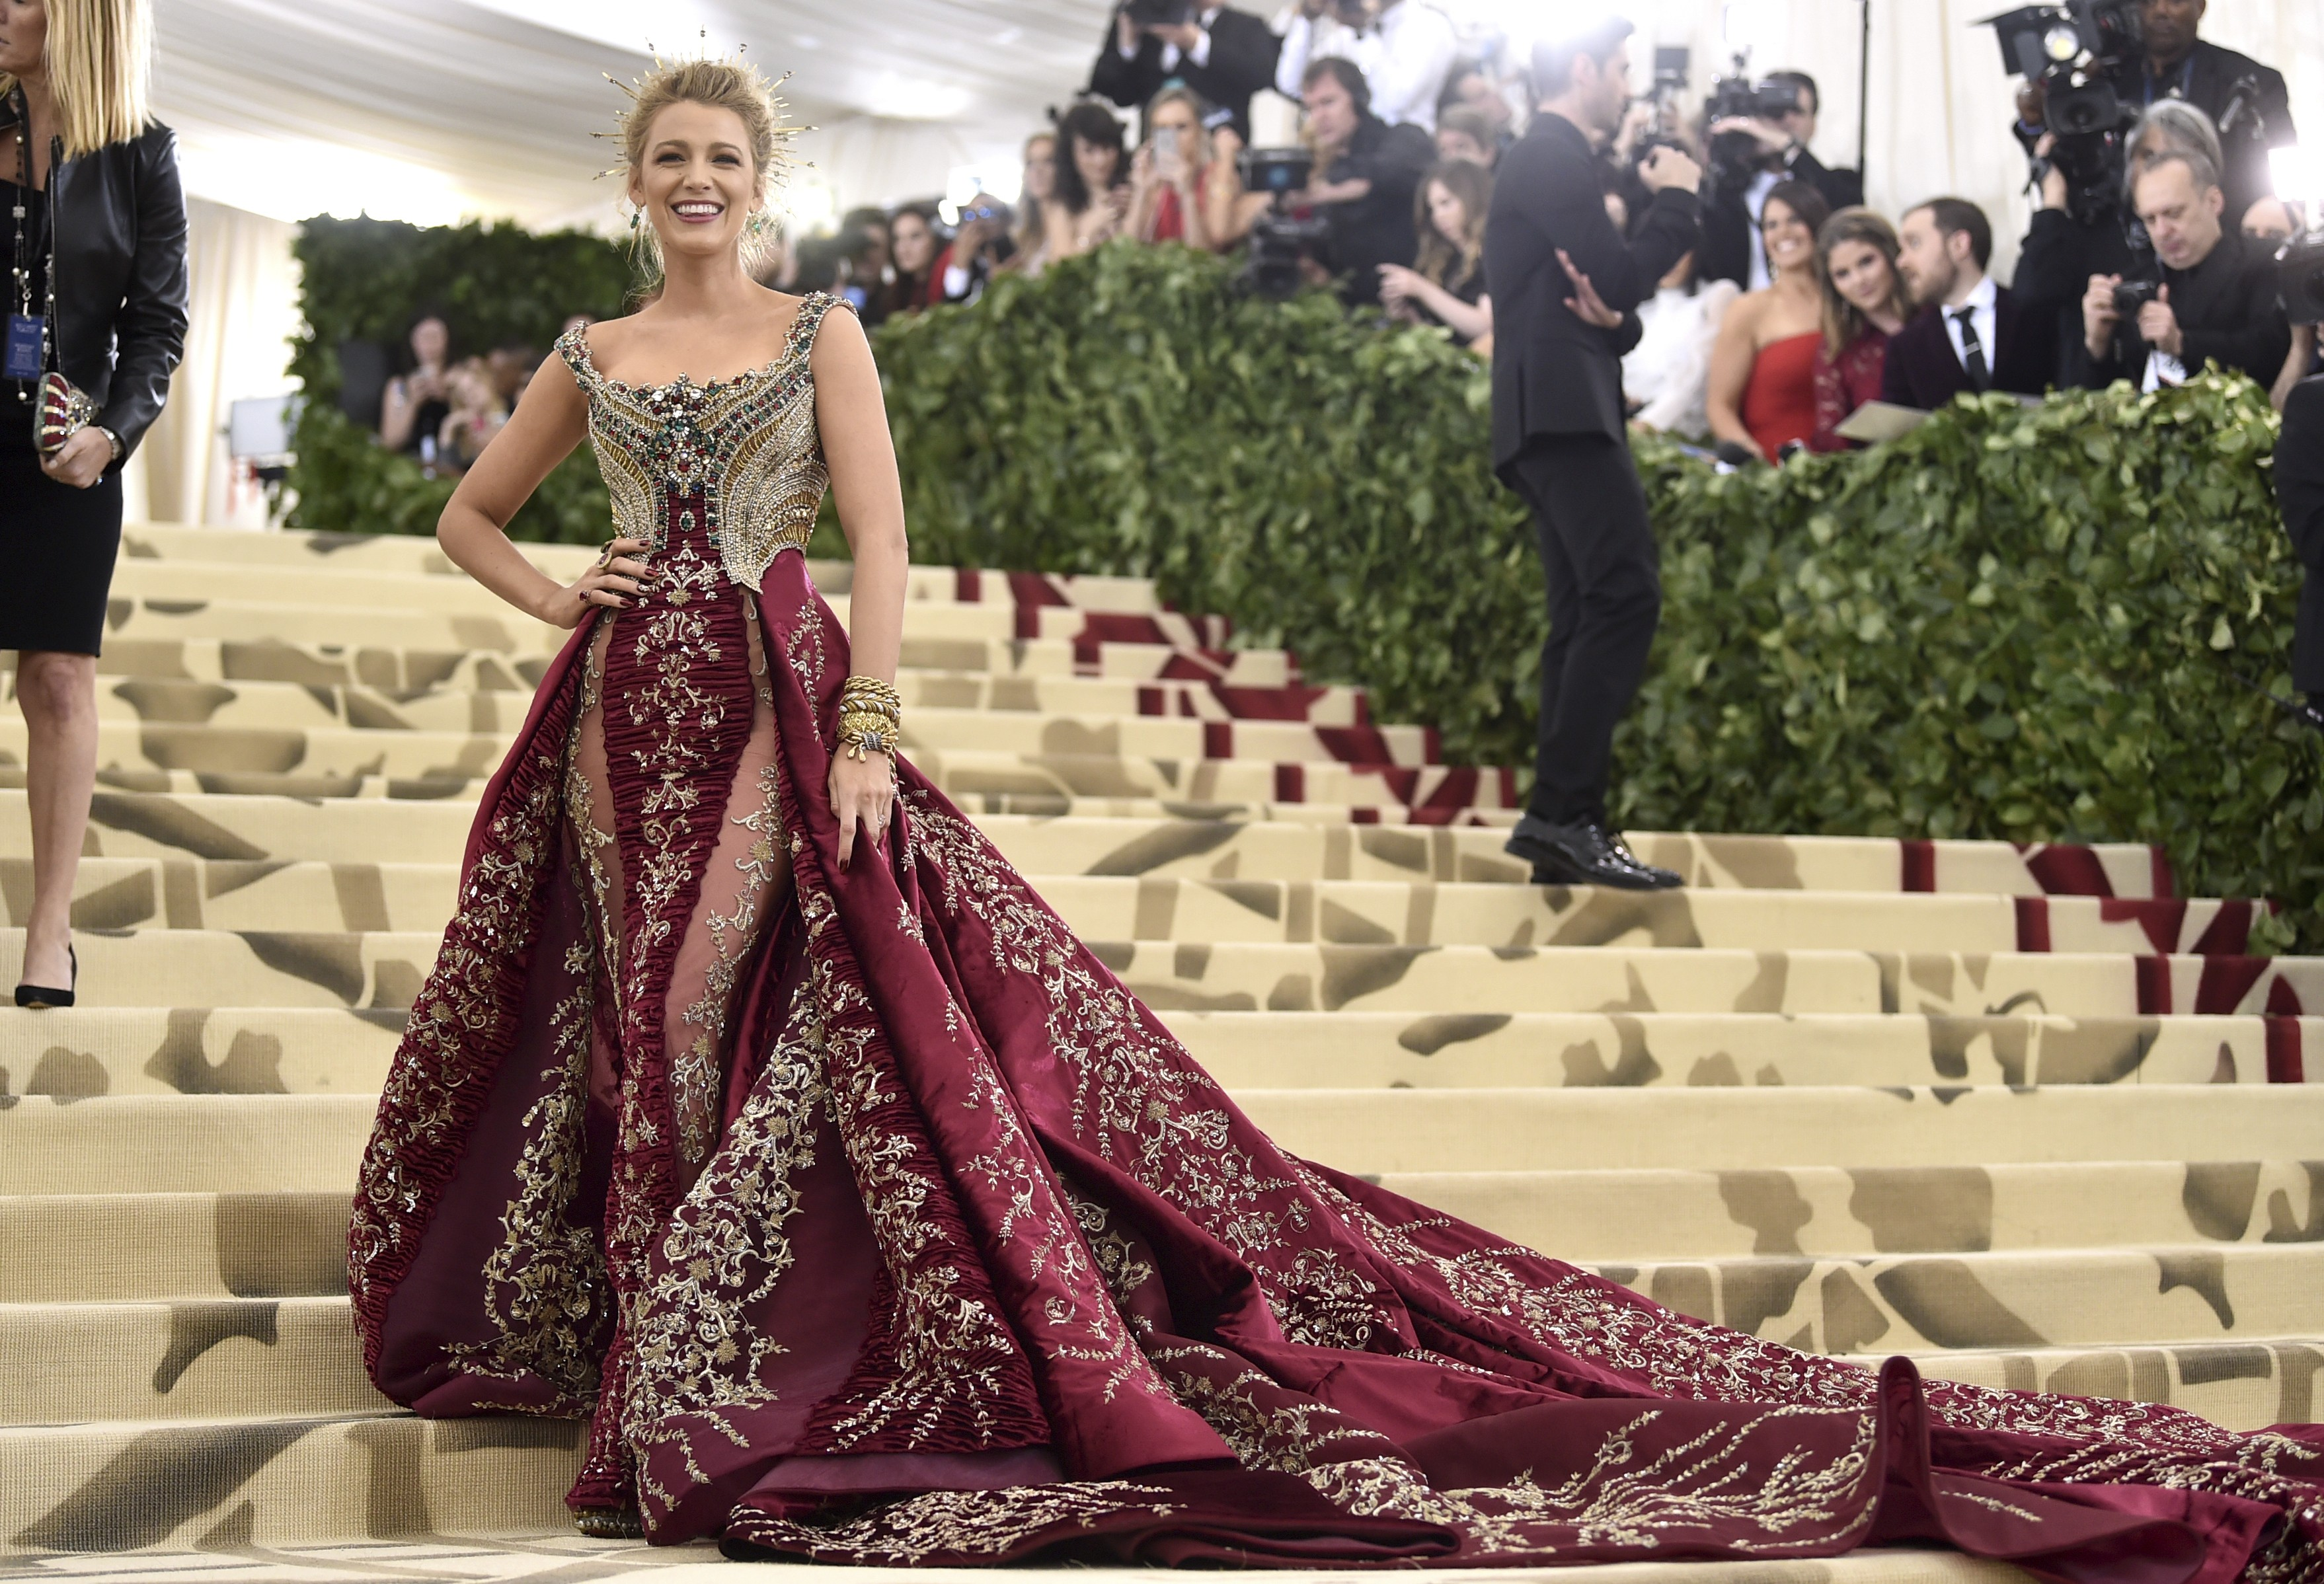 Gallery: the best and worst dressed at The Met Gala 2018